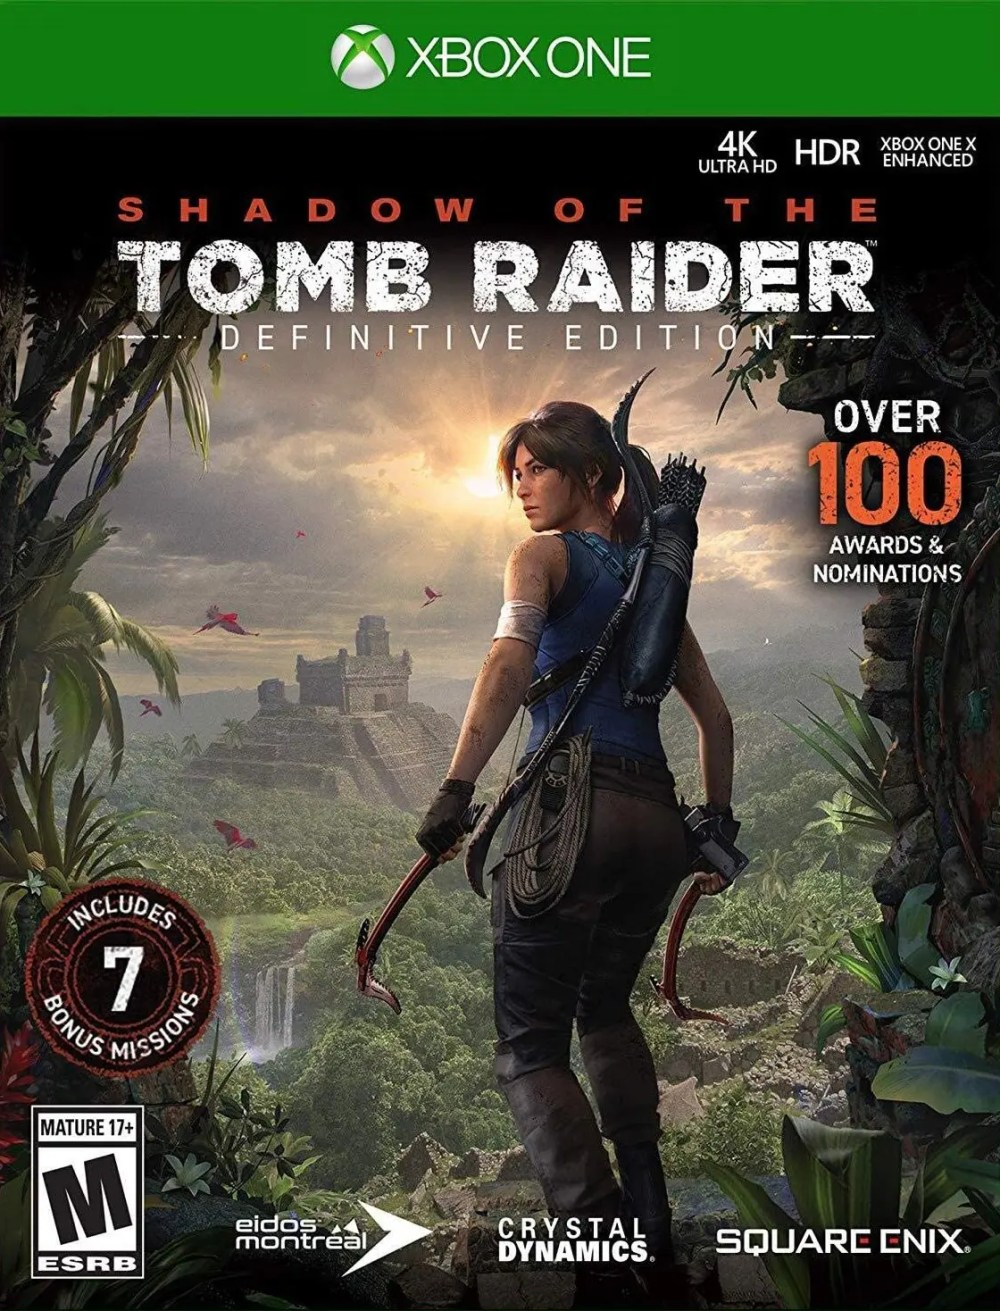 Shadow of the Tomb Raider (Definitive Edition) for Xbox One